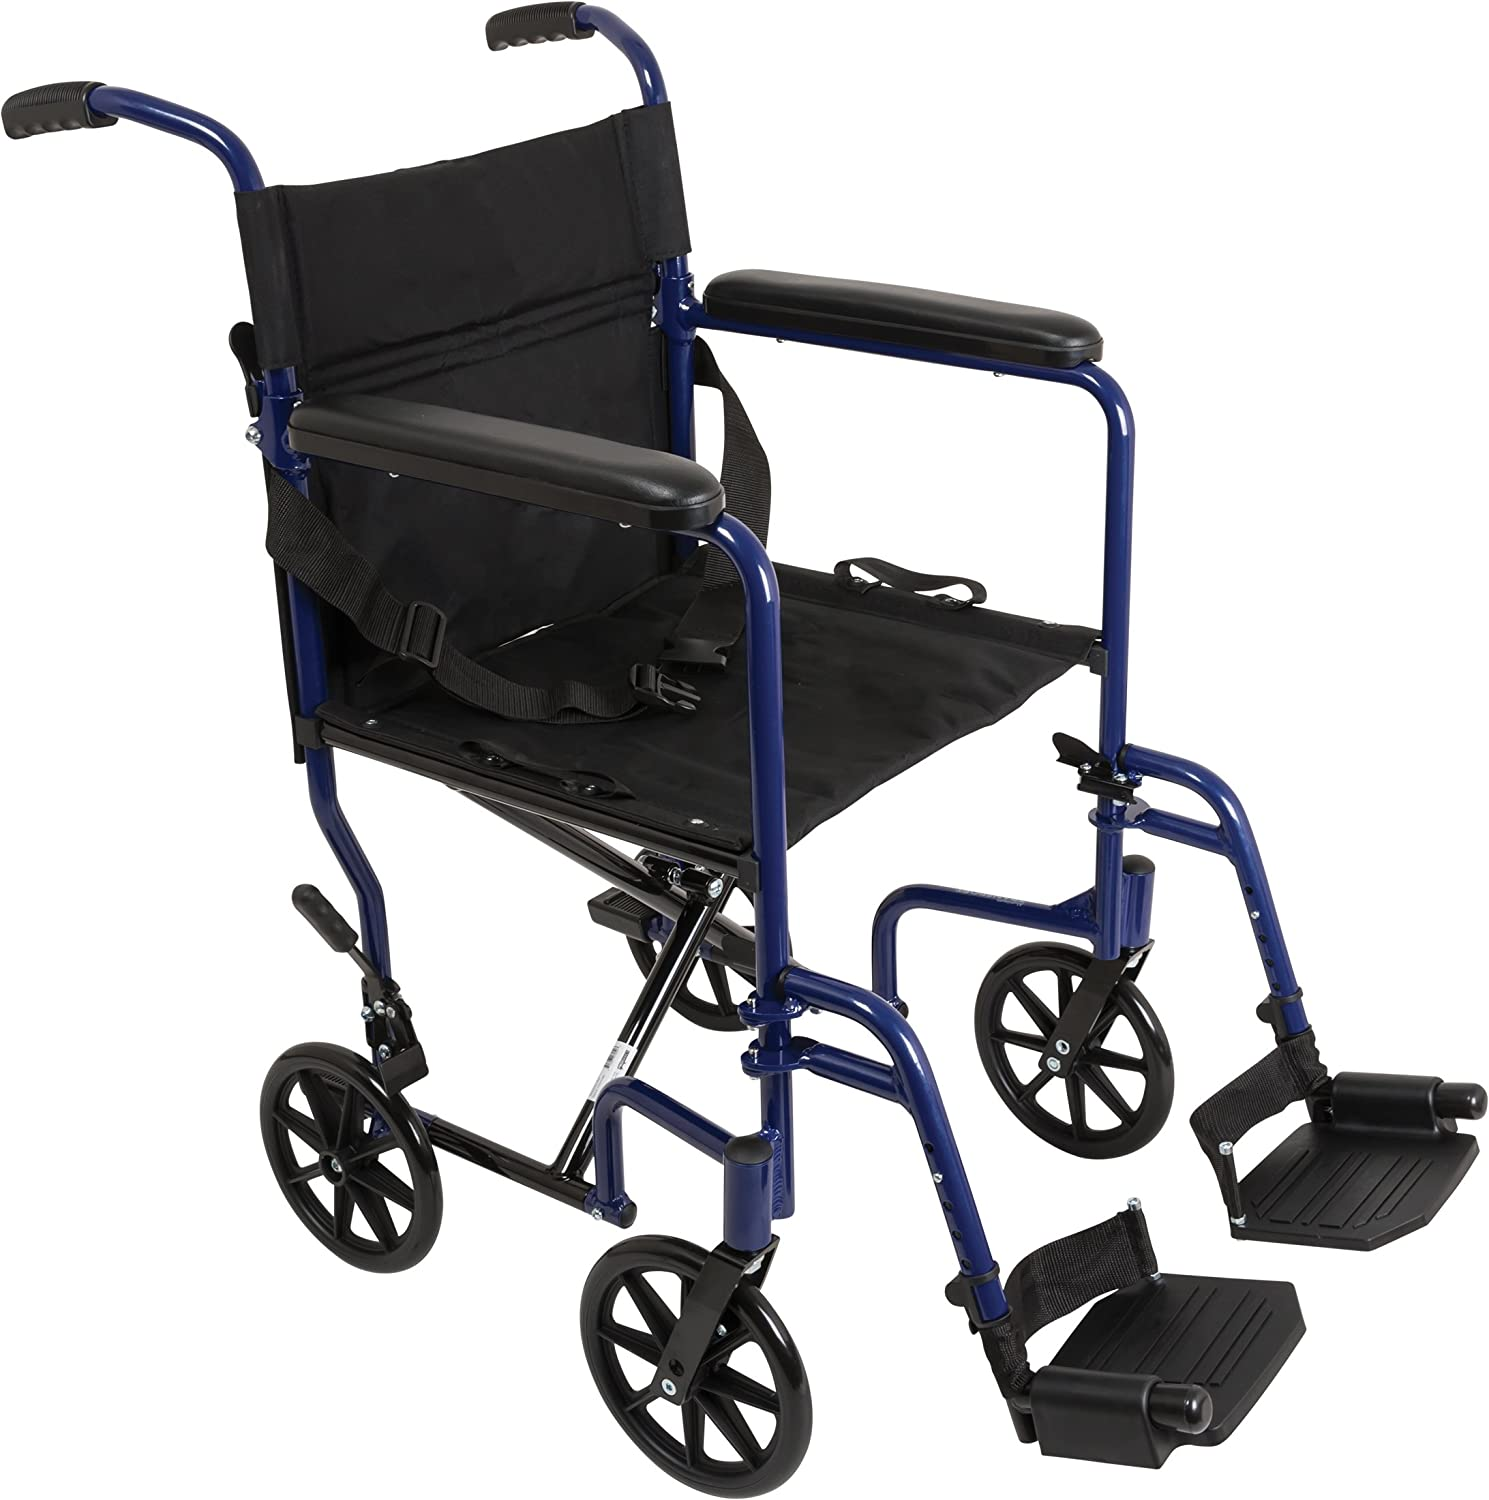 Image result for PROBASICS MEDICAL TRANSPORT WHEELCHAIR